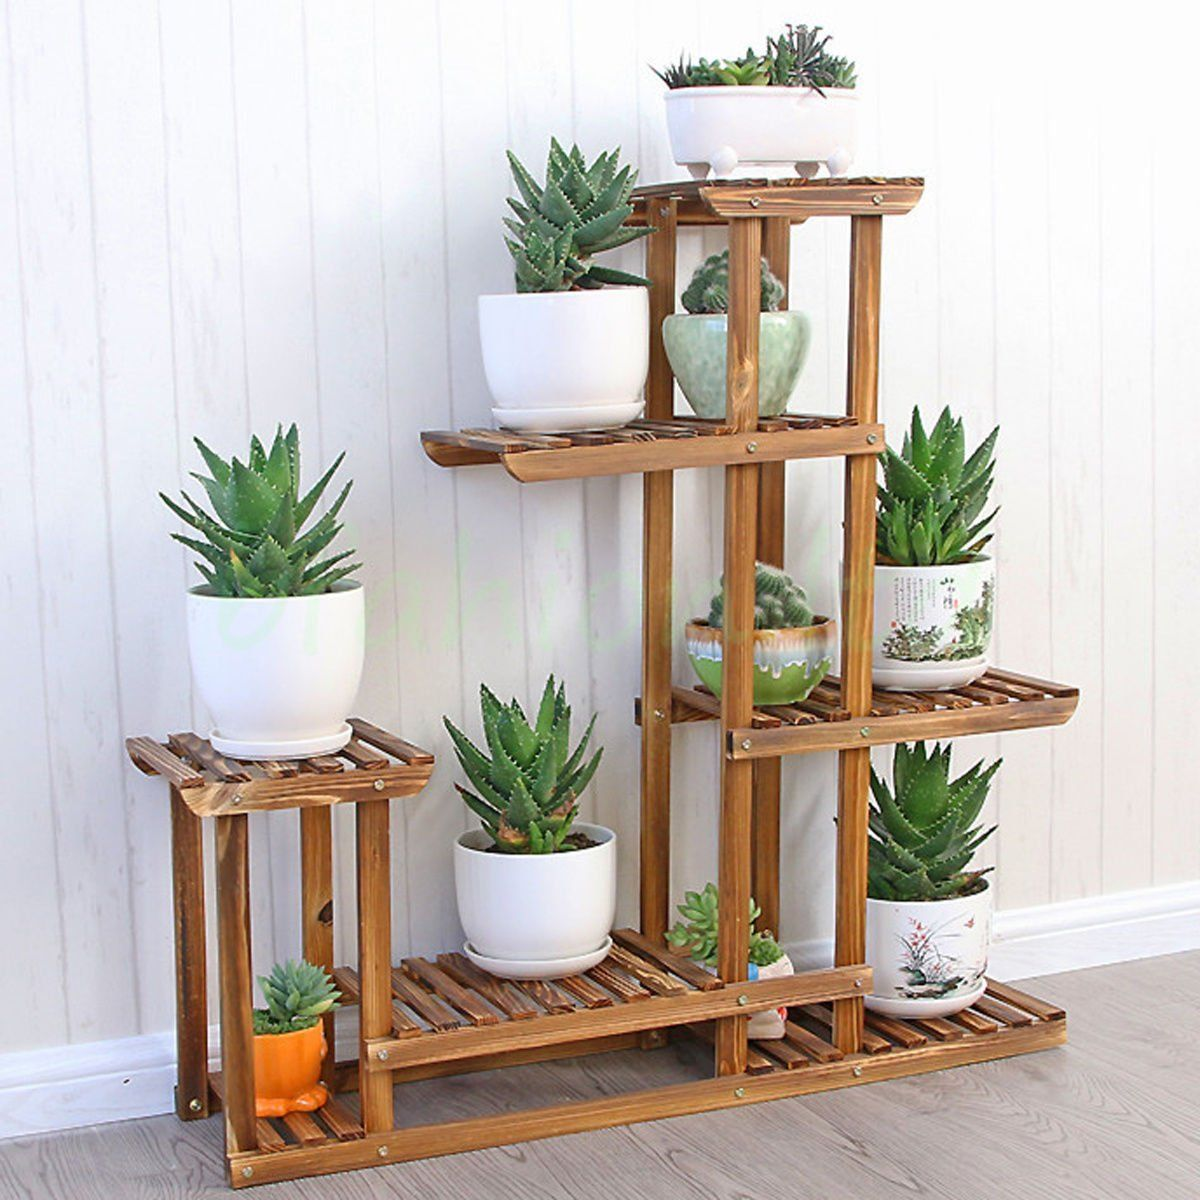 Amazon Garden Pots And Planters Malayas Wooden Plant Flower Display Stand Wood Pot Shelf